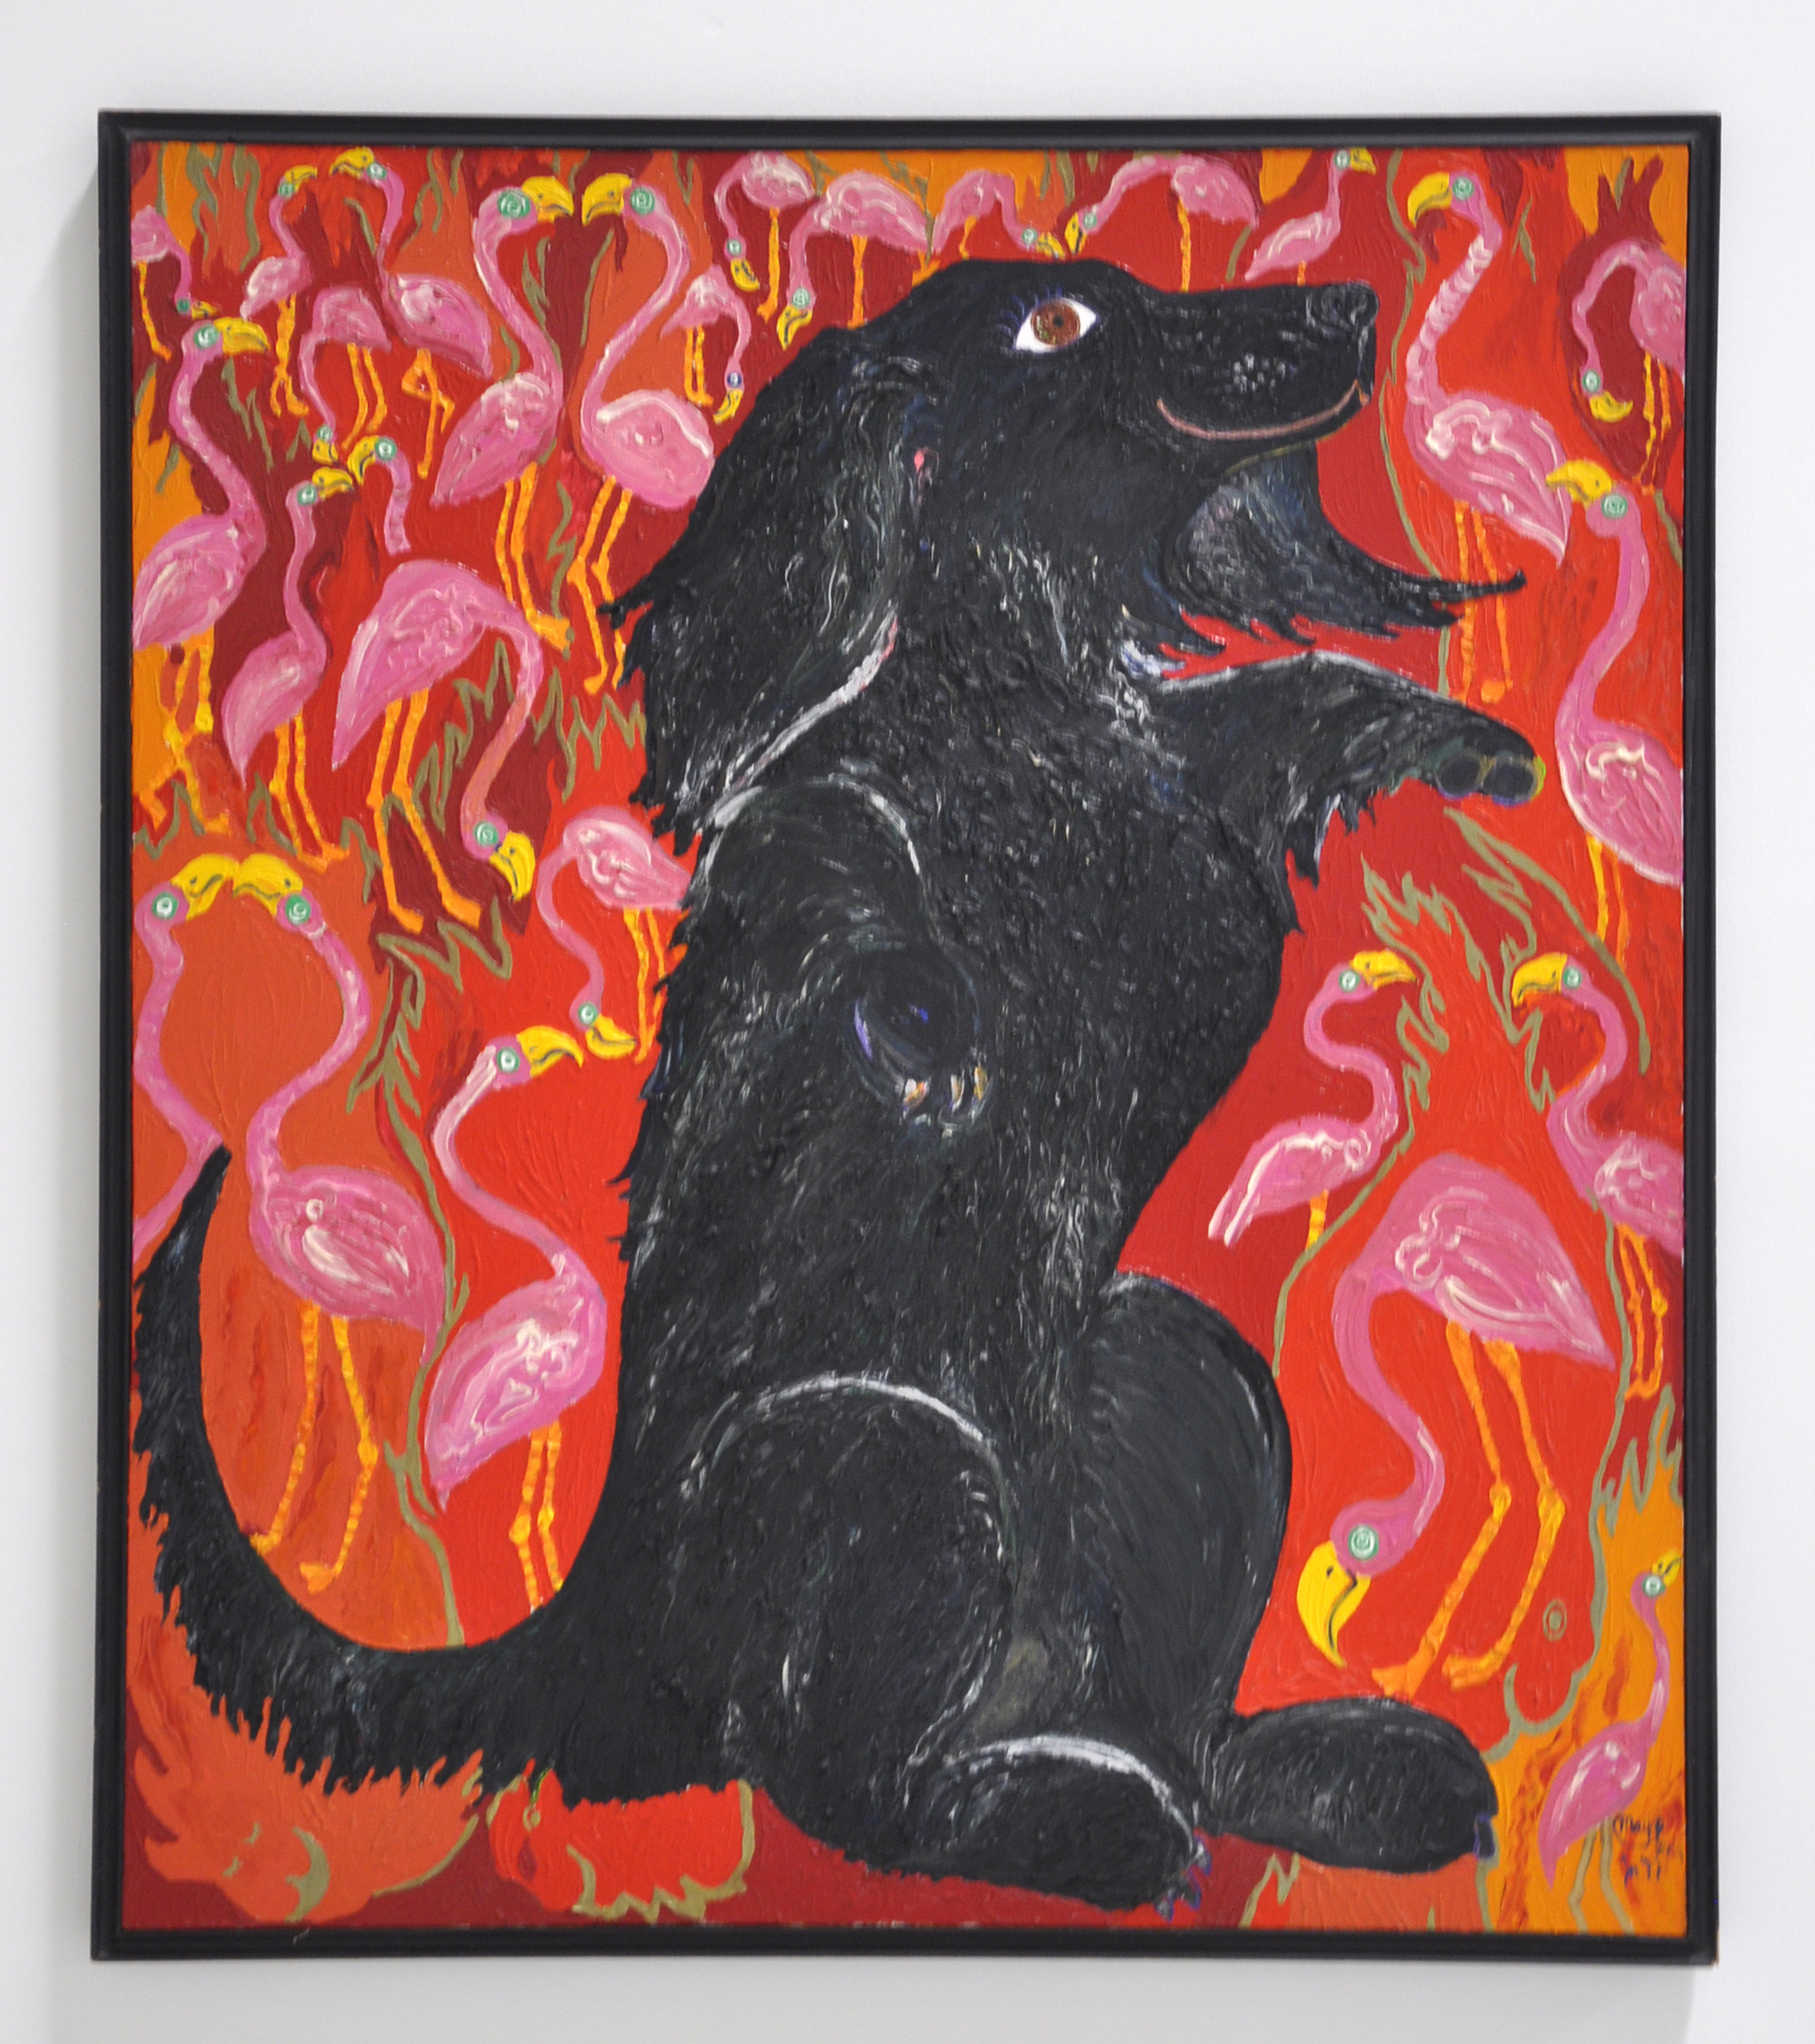 "Maija Peeples-Bright, ""Woofs Eternal Flamingo Flames"", oil on canvas, 49 1/2 x 44 in, 1977"